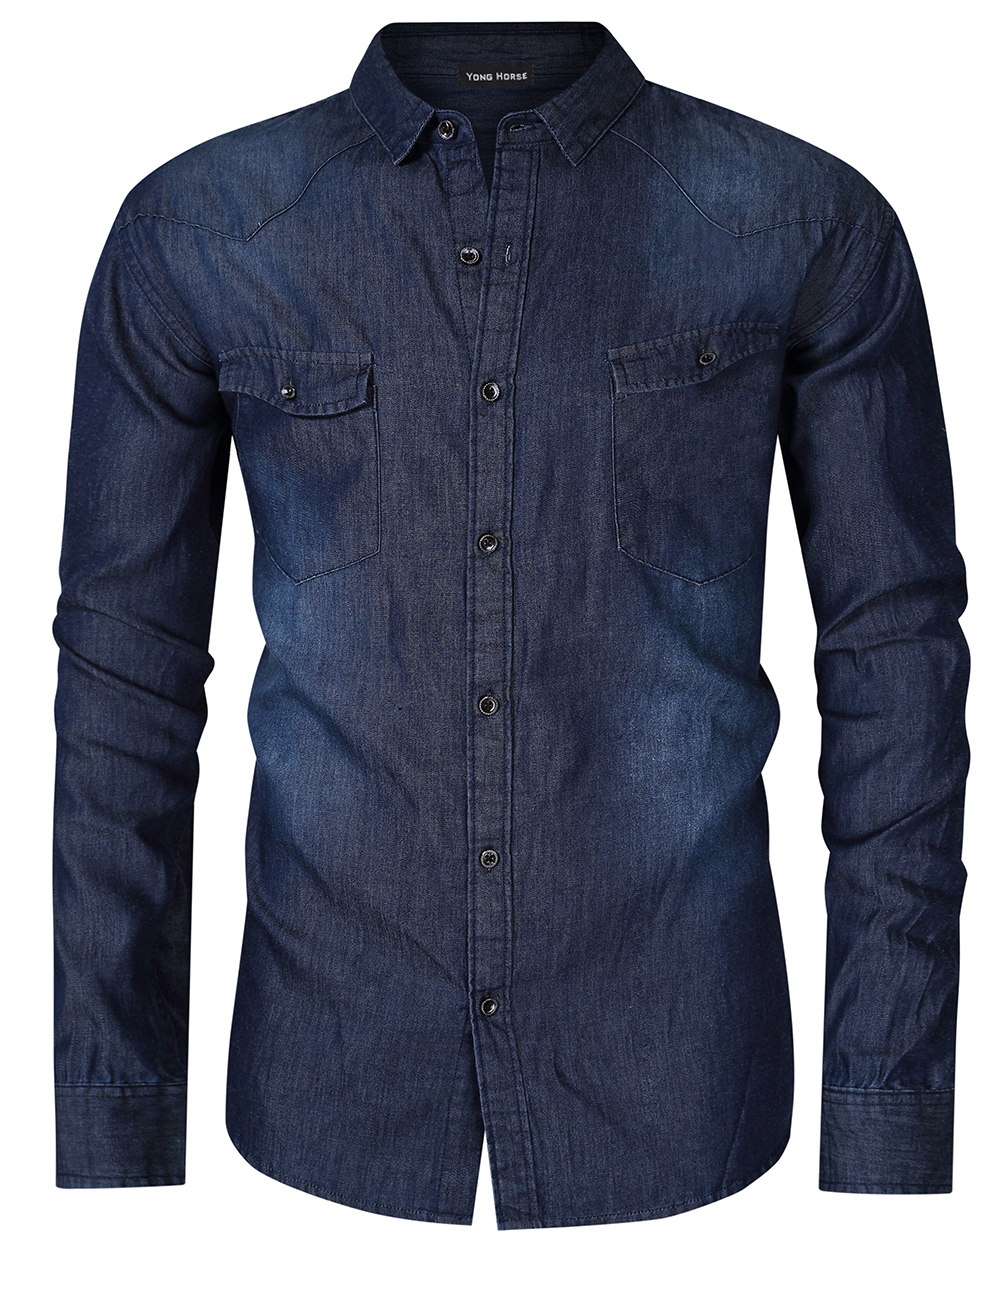 Yong Horse Men's Western Work Denim Shirt